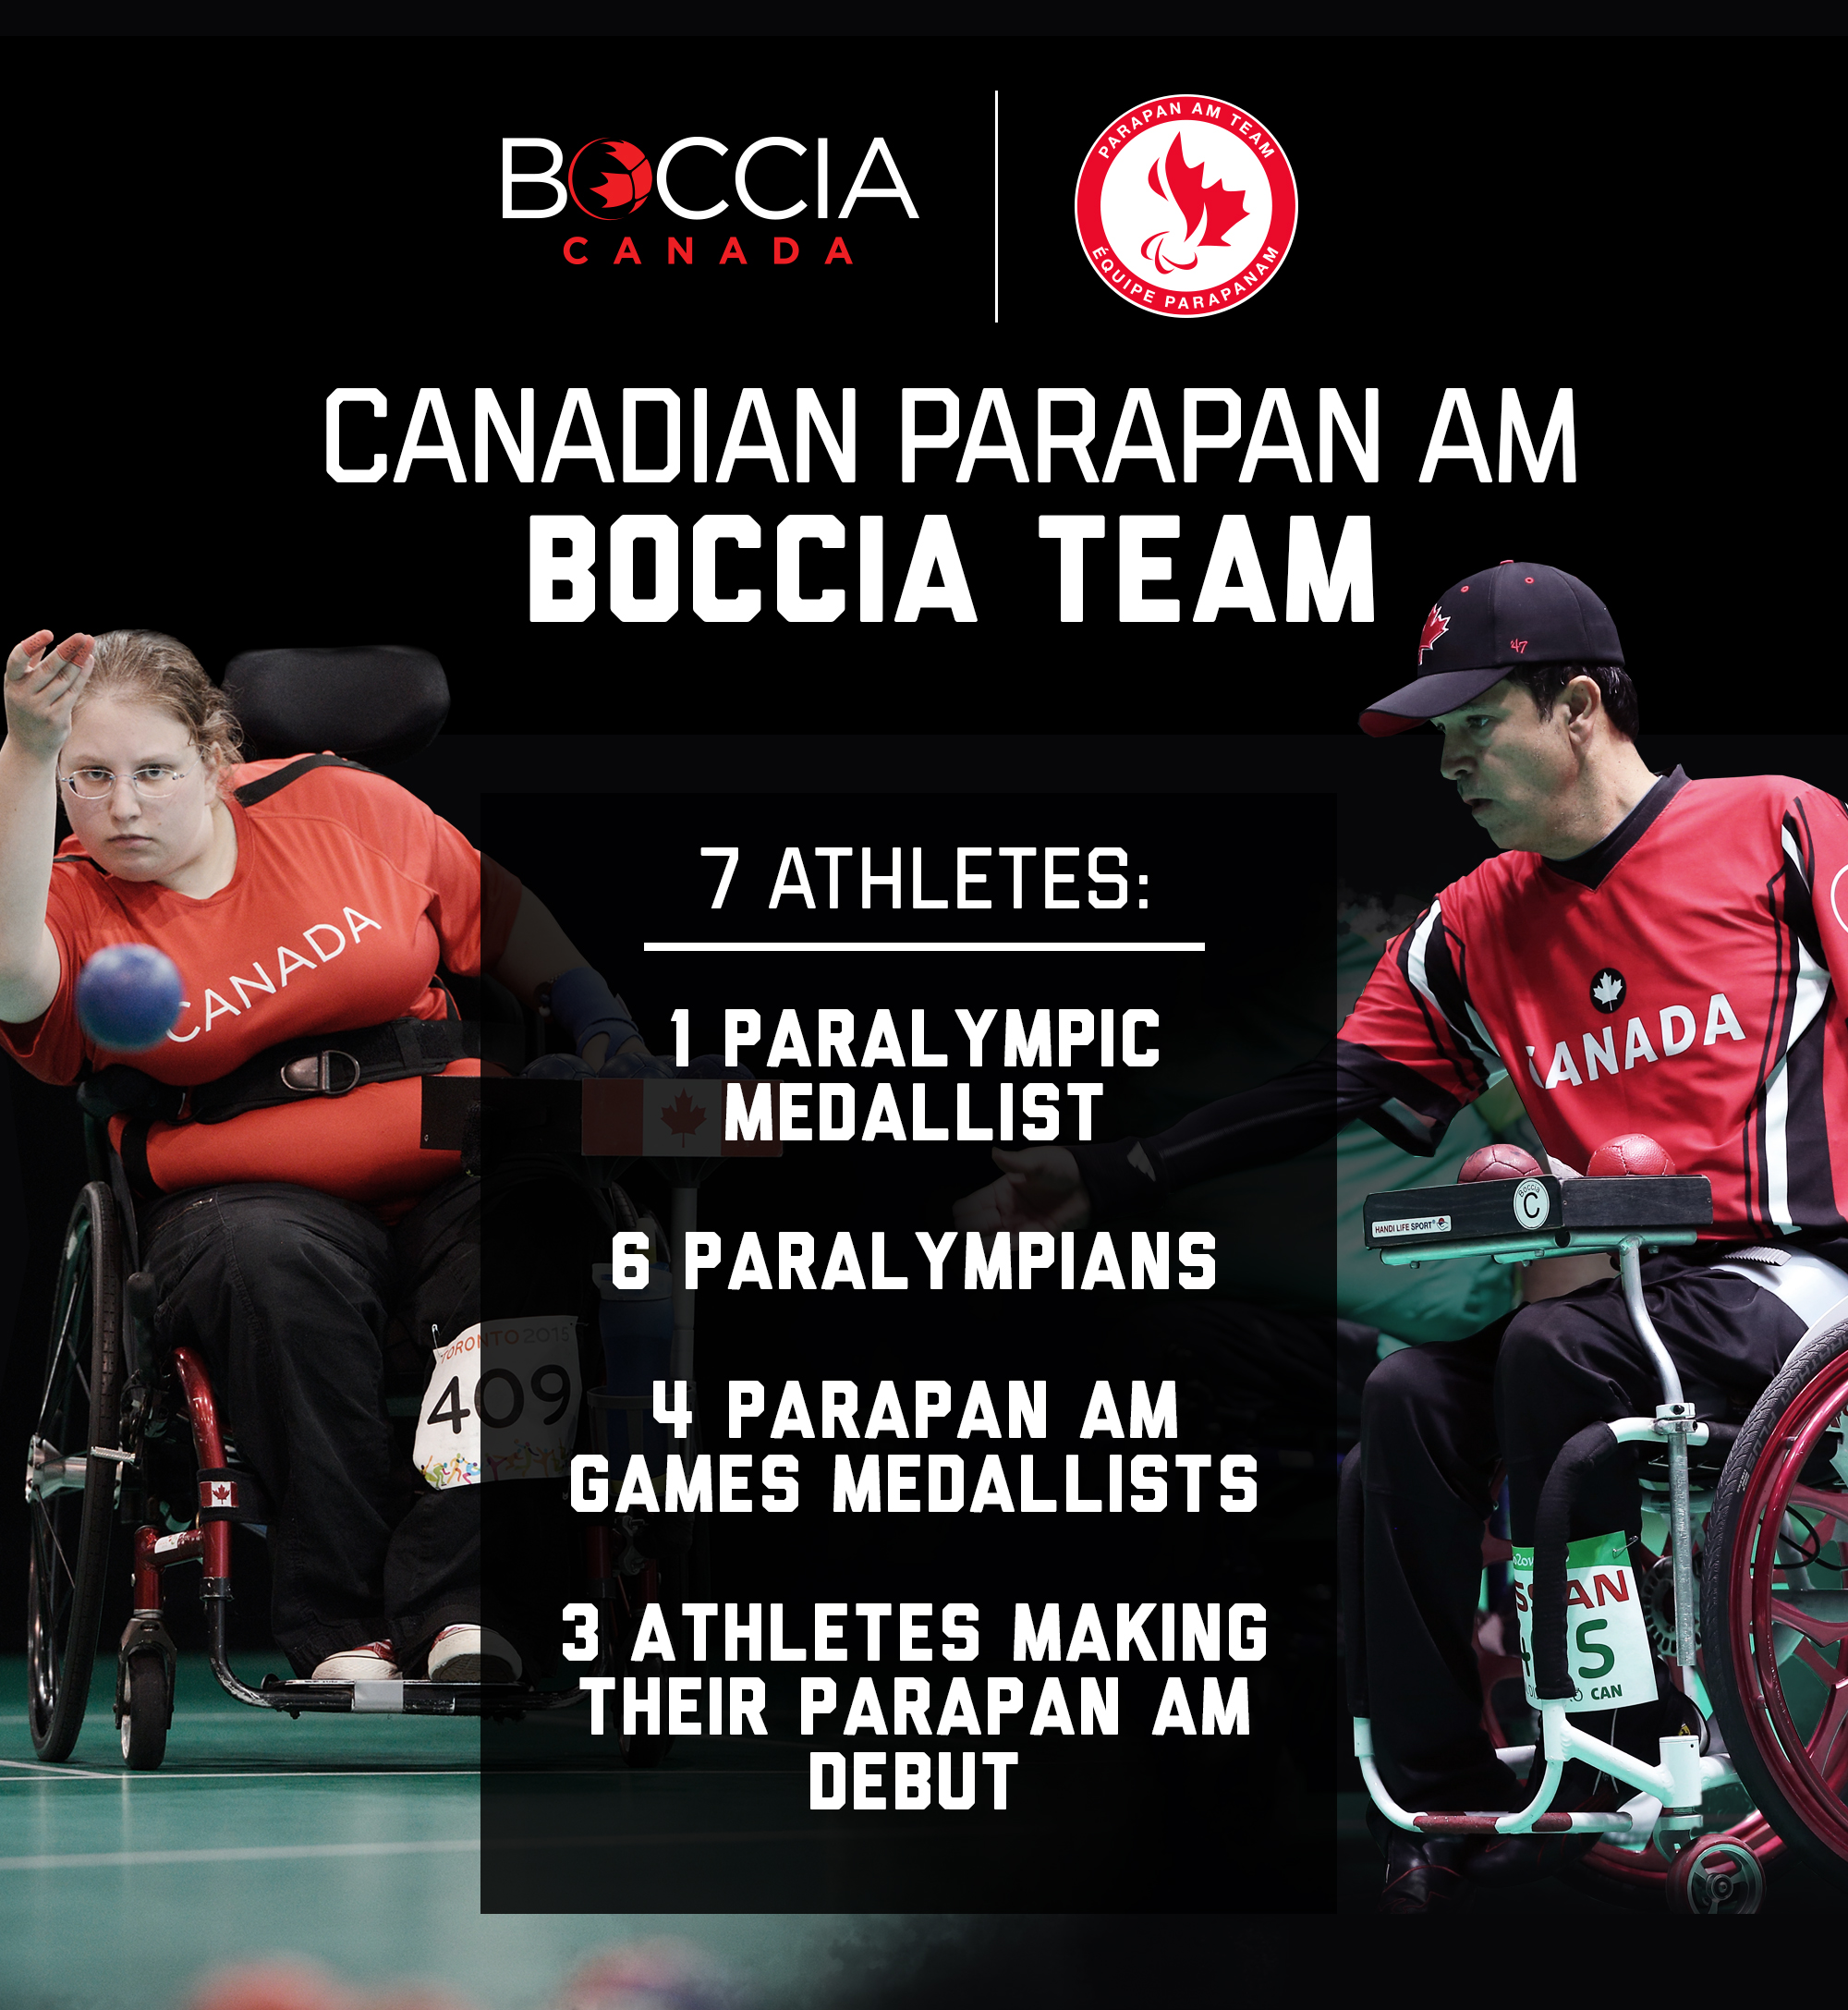 A graphic showing the make-up of the Canadian Parapan Am Boccia Team